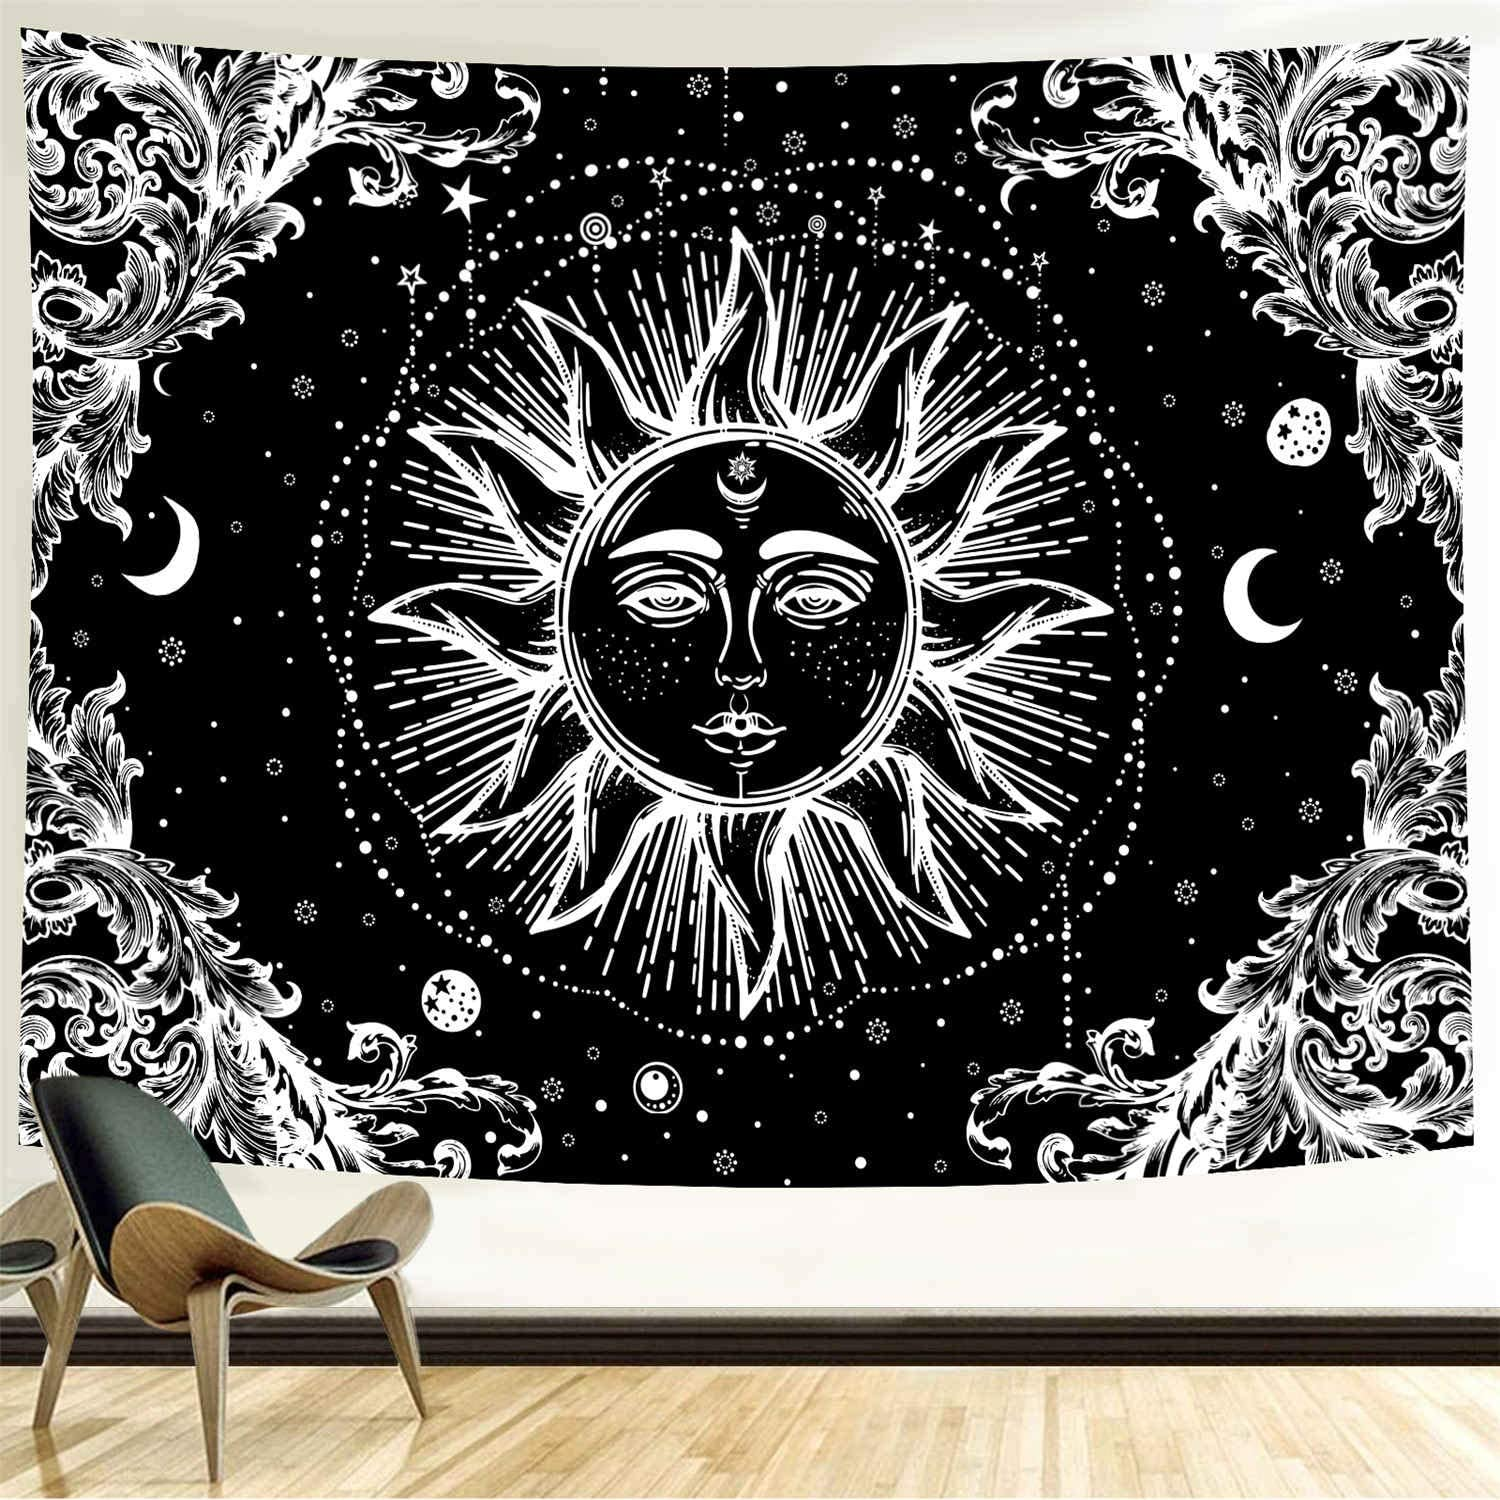 Funeon Black and White Sun Tapestry for Bedroom Bohemian Mandala Tapestry Wall Hanging Moon Stars Tapistry Dorm Decoration for College Girls | Cute Dark Tapistry Psychedelic Wall Decor 90x70 inches